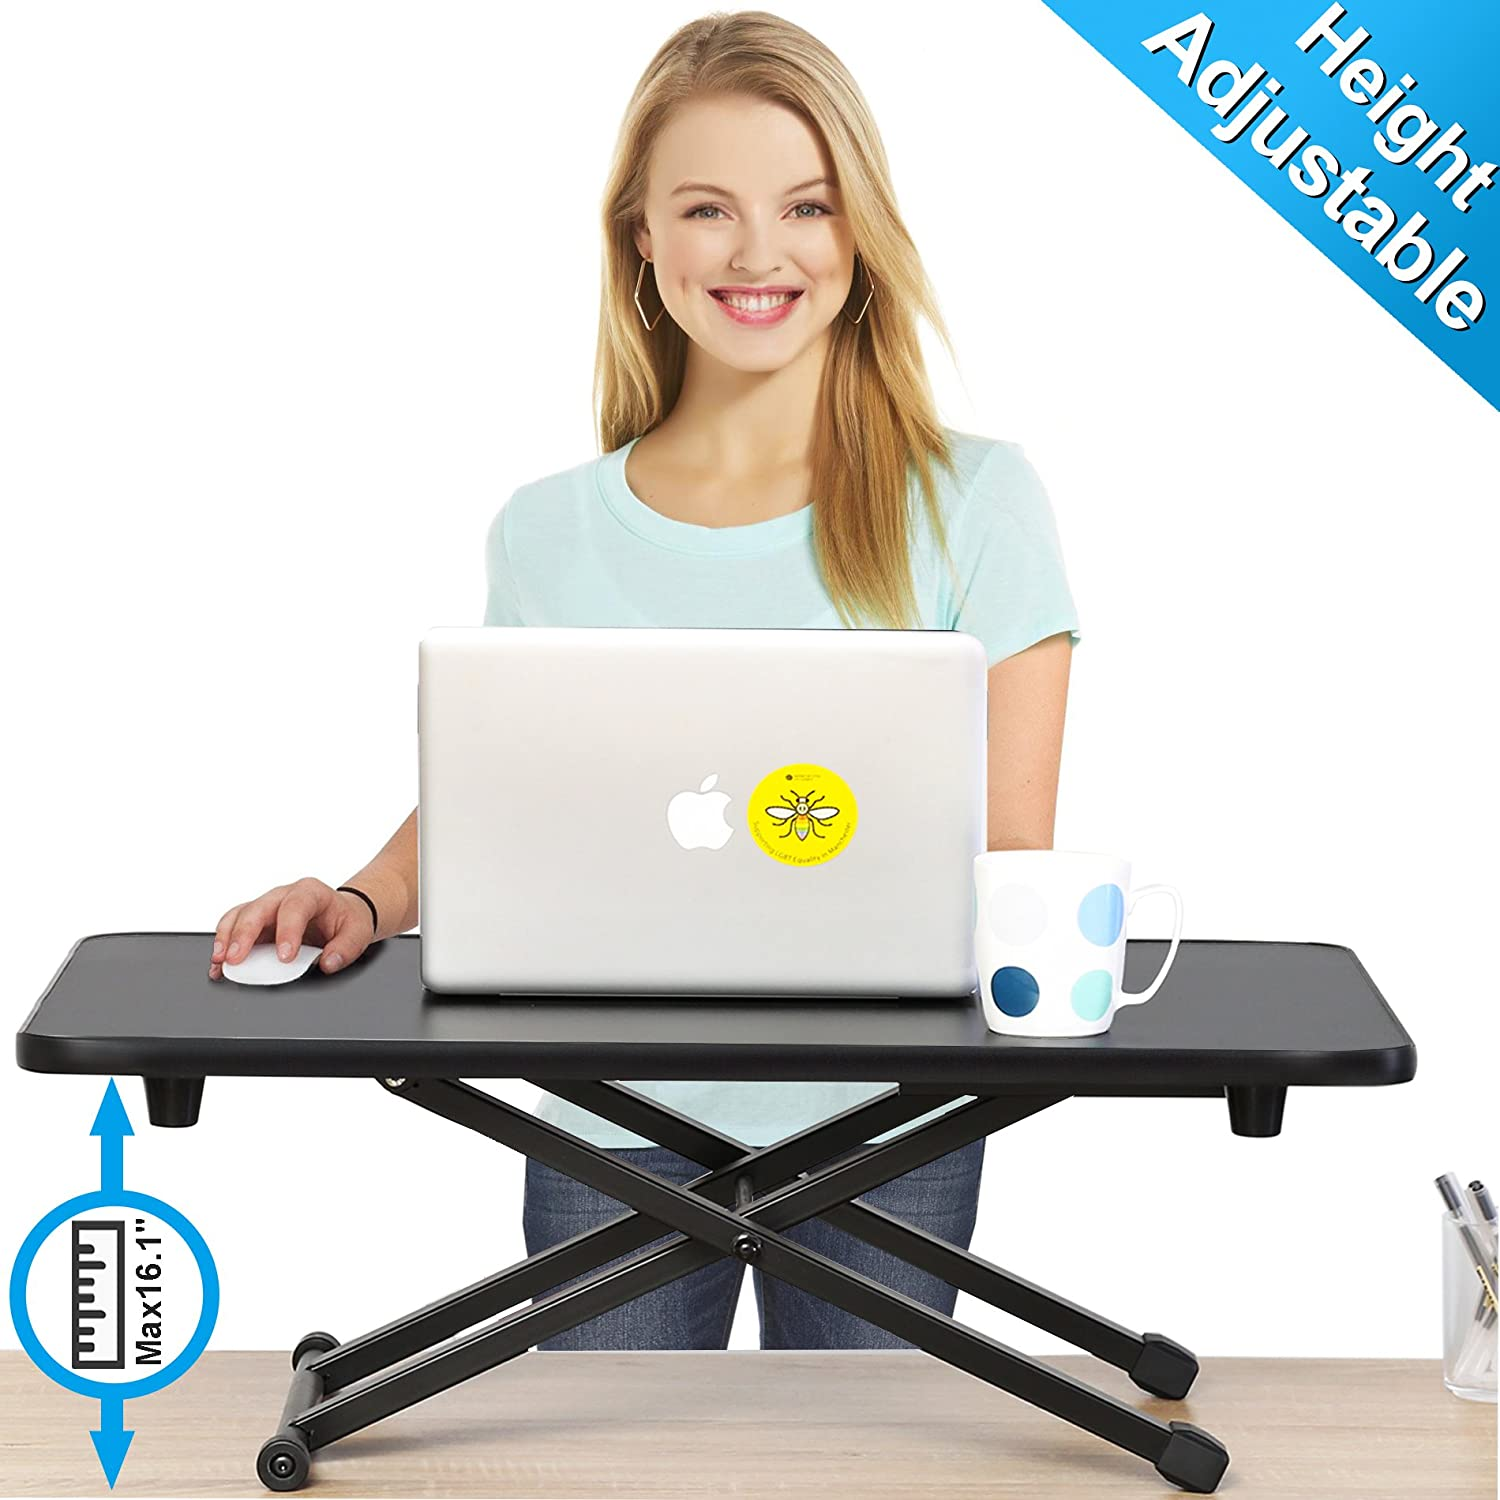 FITUEYES Standing Desk Height Adjustable Desk Converter Monitor Stand 30in x 20in Workspace, Sit to Stand in Seconds SD108001MB